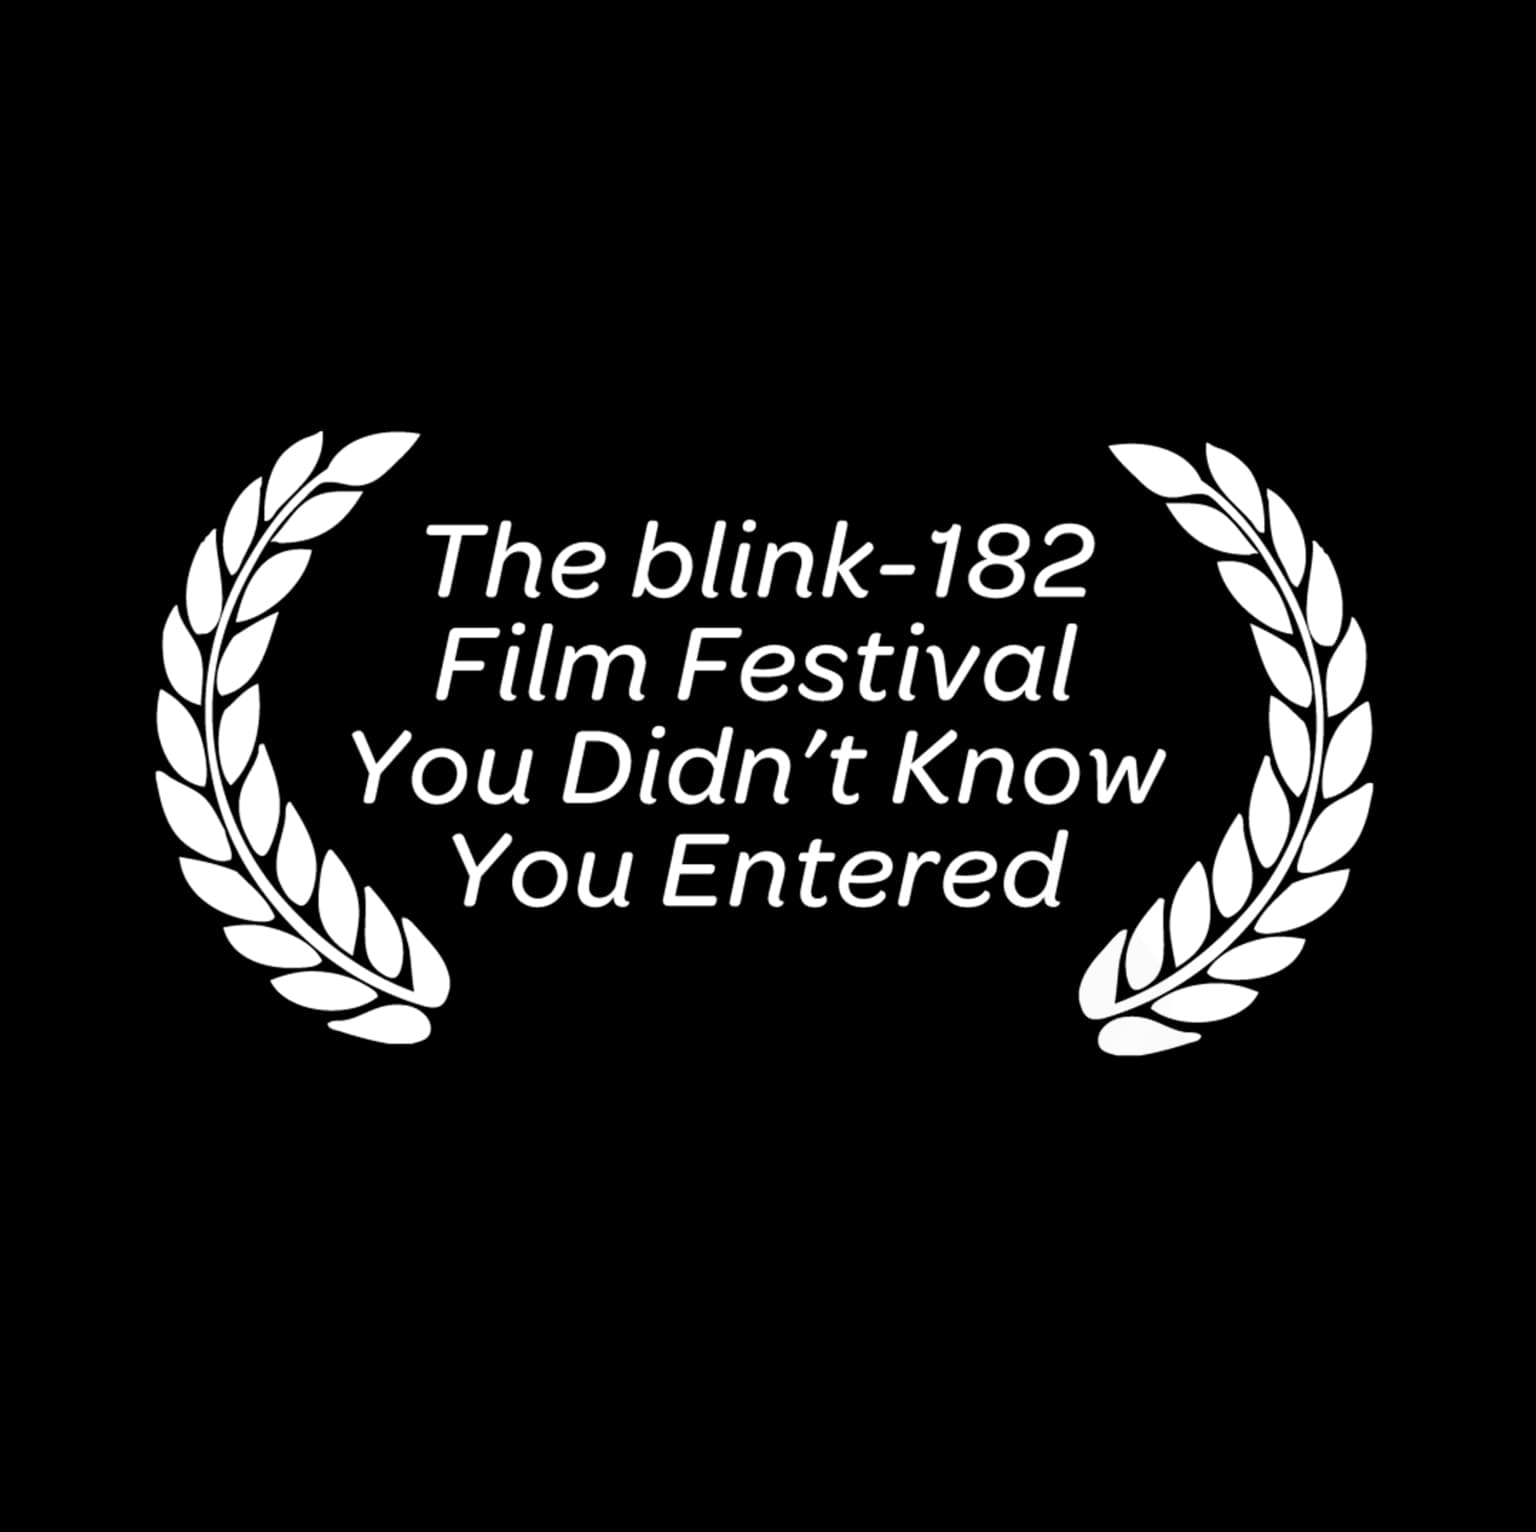 The blink-182 Film Festival You Didn't Know You Entered